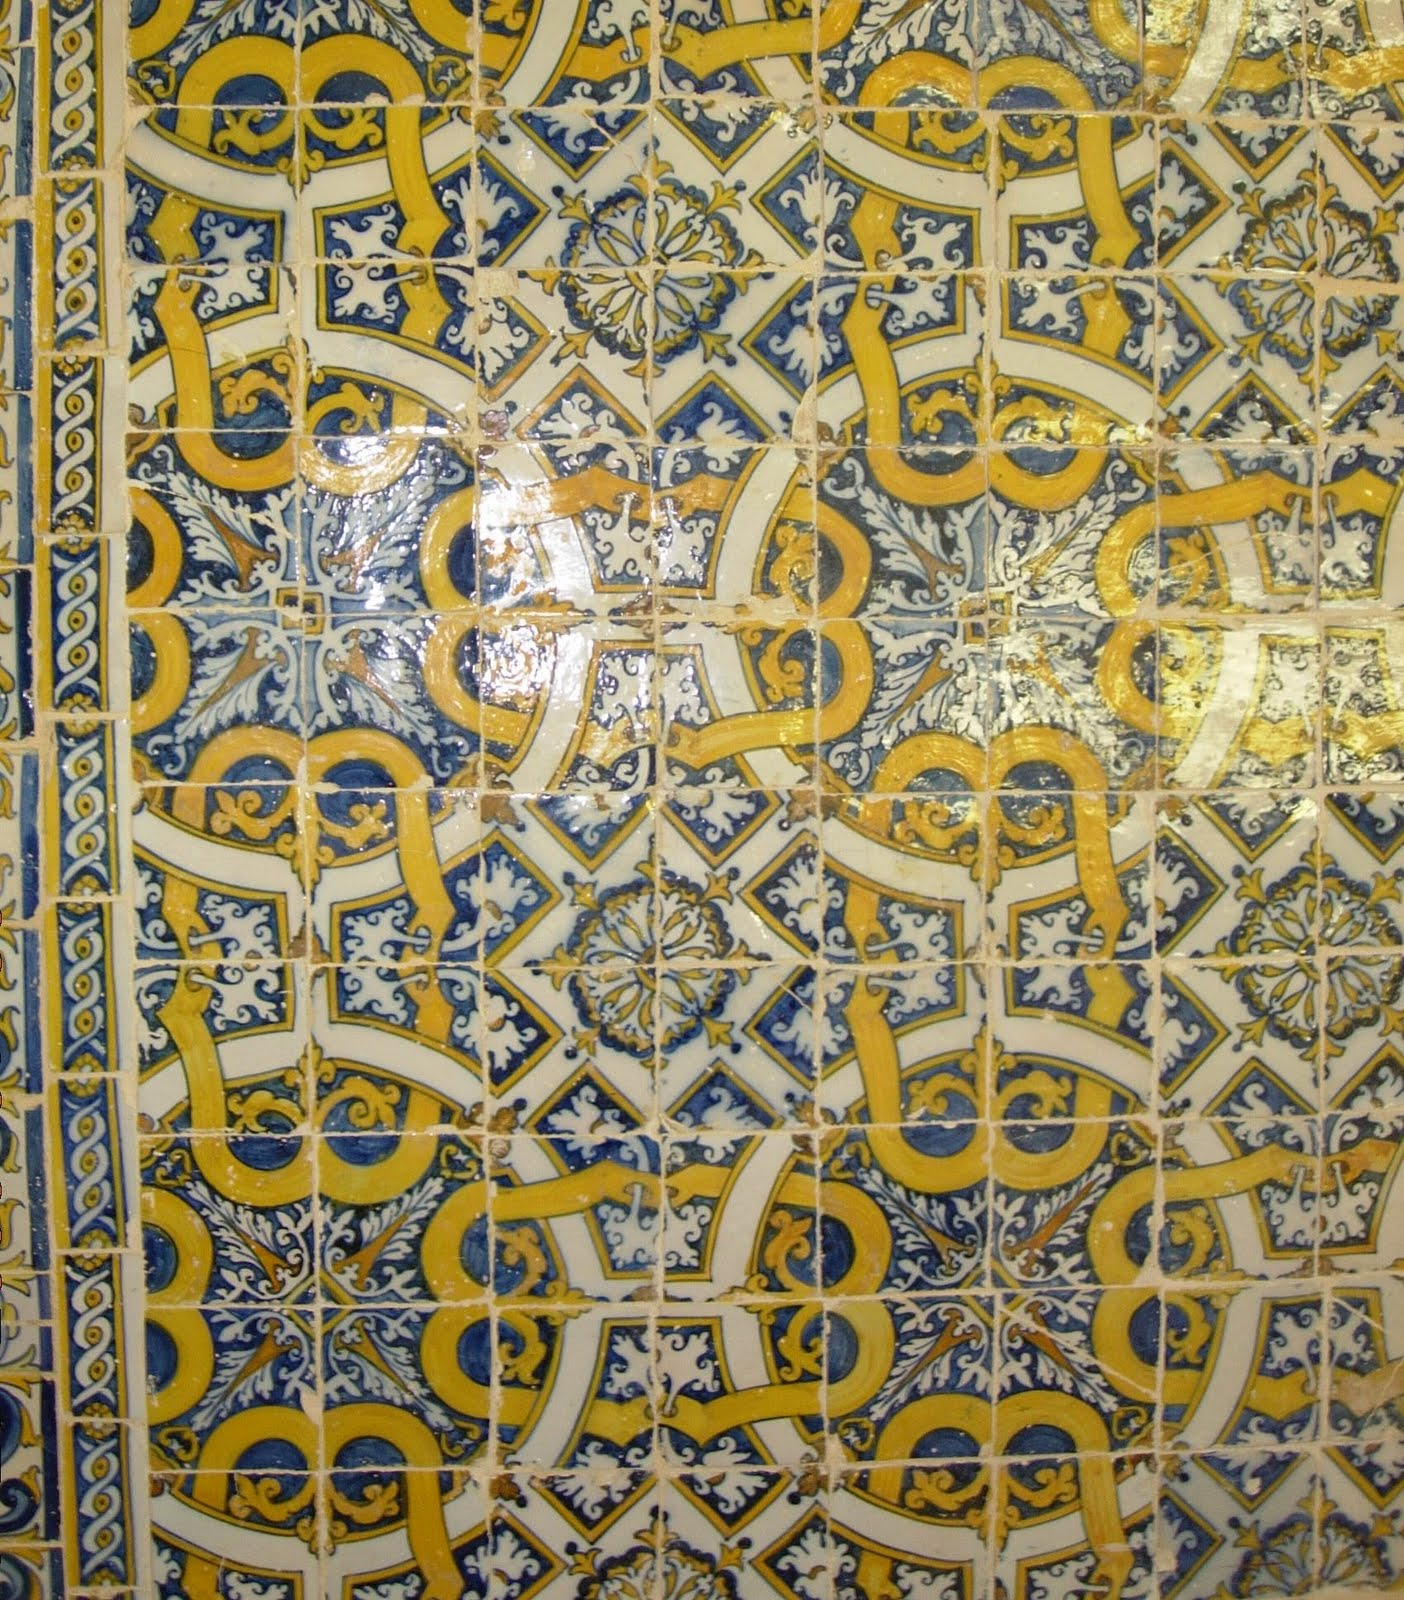 Polyedros Wallpaper Groups Tiles Portugal Santarem Igreja De